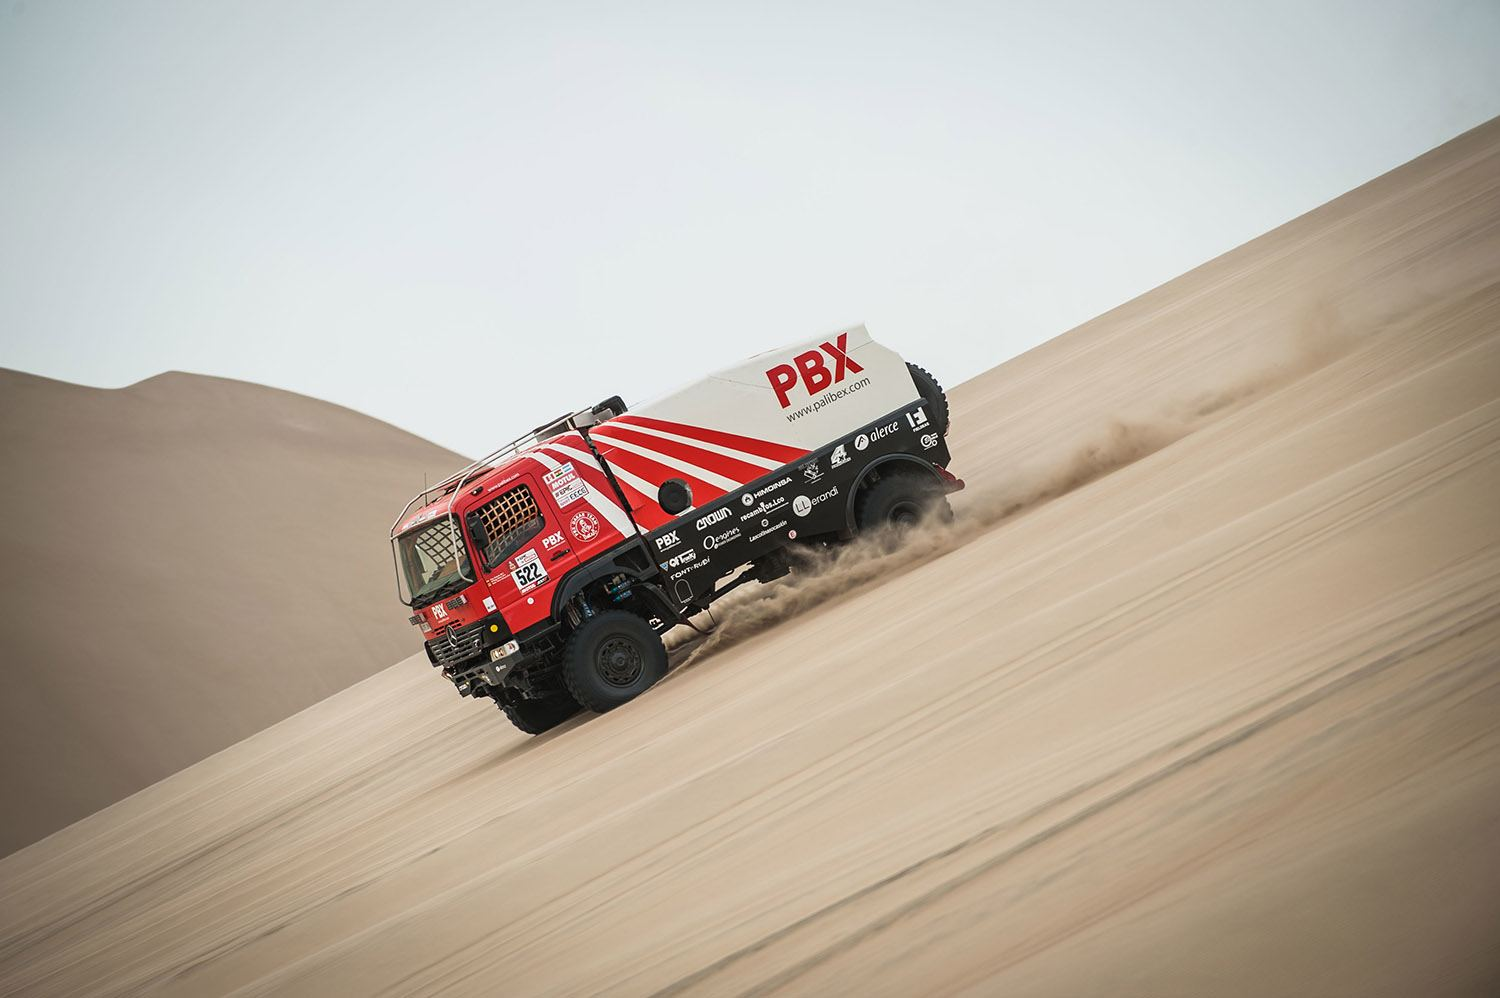 522-2018-01-06-PBX DAKAR 2018 TEAM (7)